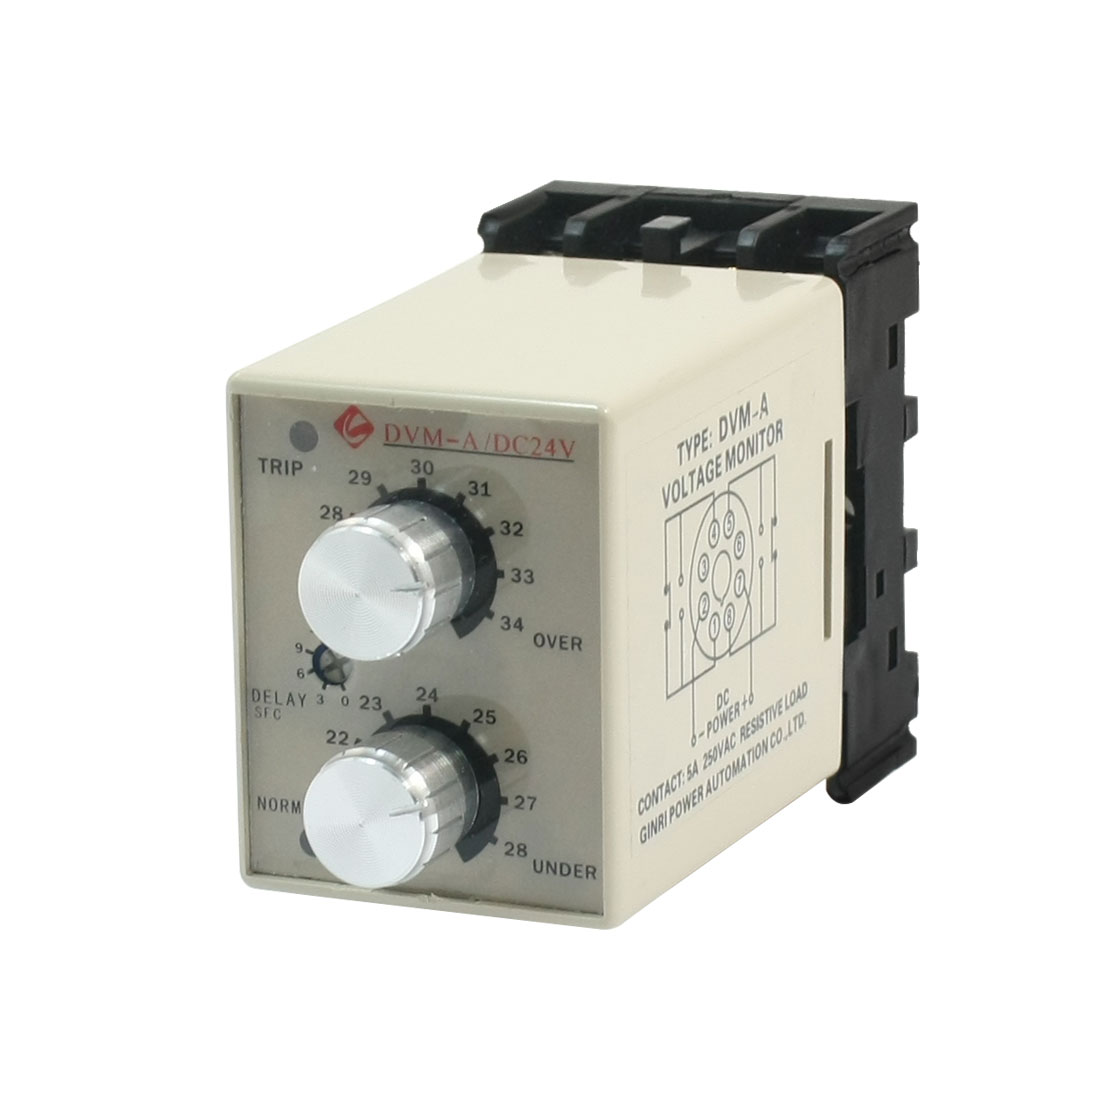 DVM-A/24V DC 24V Tow LED Indicator 35mm Rail Mounting Adjustable Over/Under Voltage Volt Monitor Relay